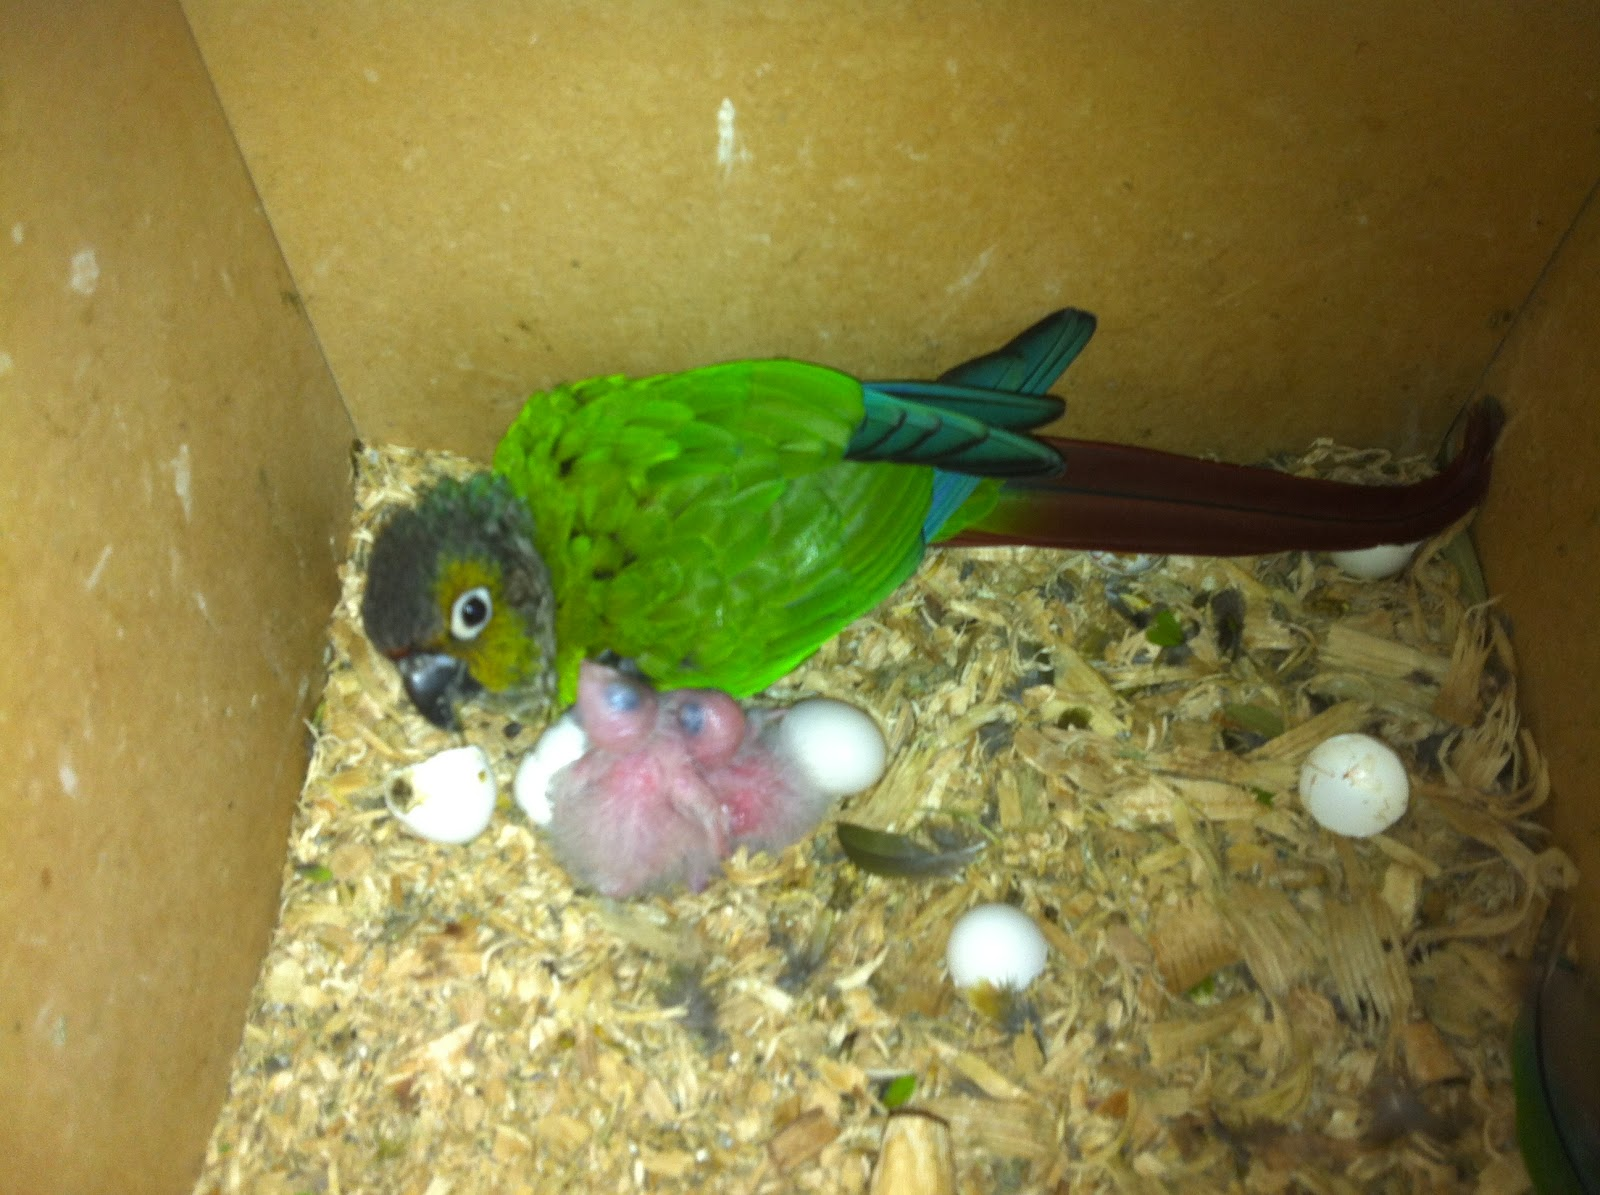 Indian Green Parrot http://parrotbreeding.blogspot.com/2012/11/1-2-3-green-cheek-conure-chicks.html